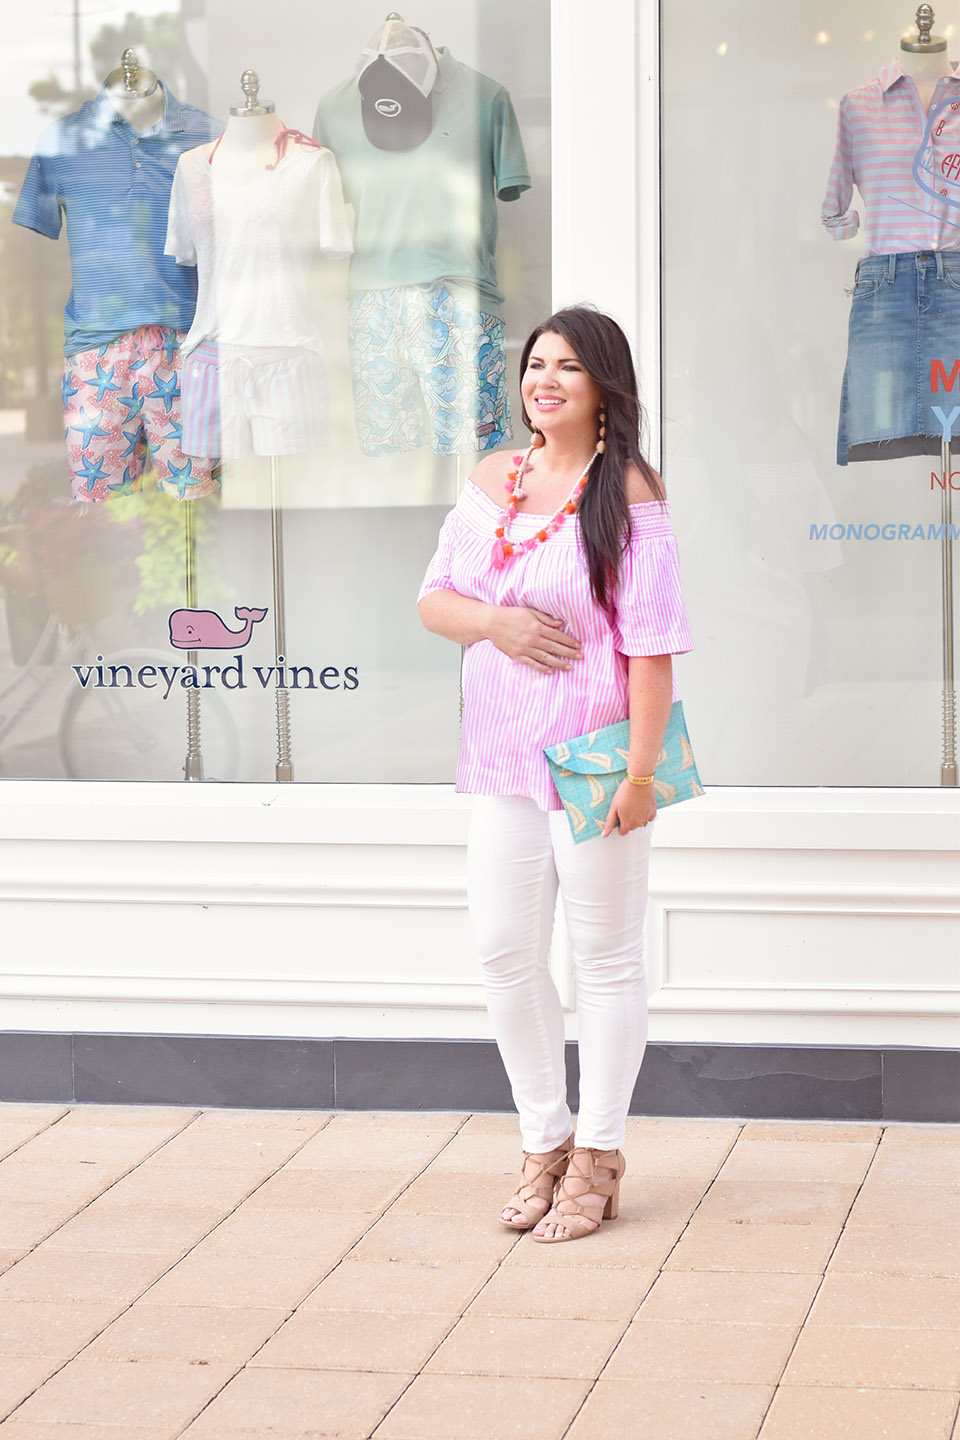 Jami Ray Grand Boulevard Vineyard Vines Stripe Top White Jeans